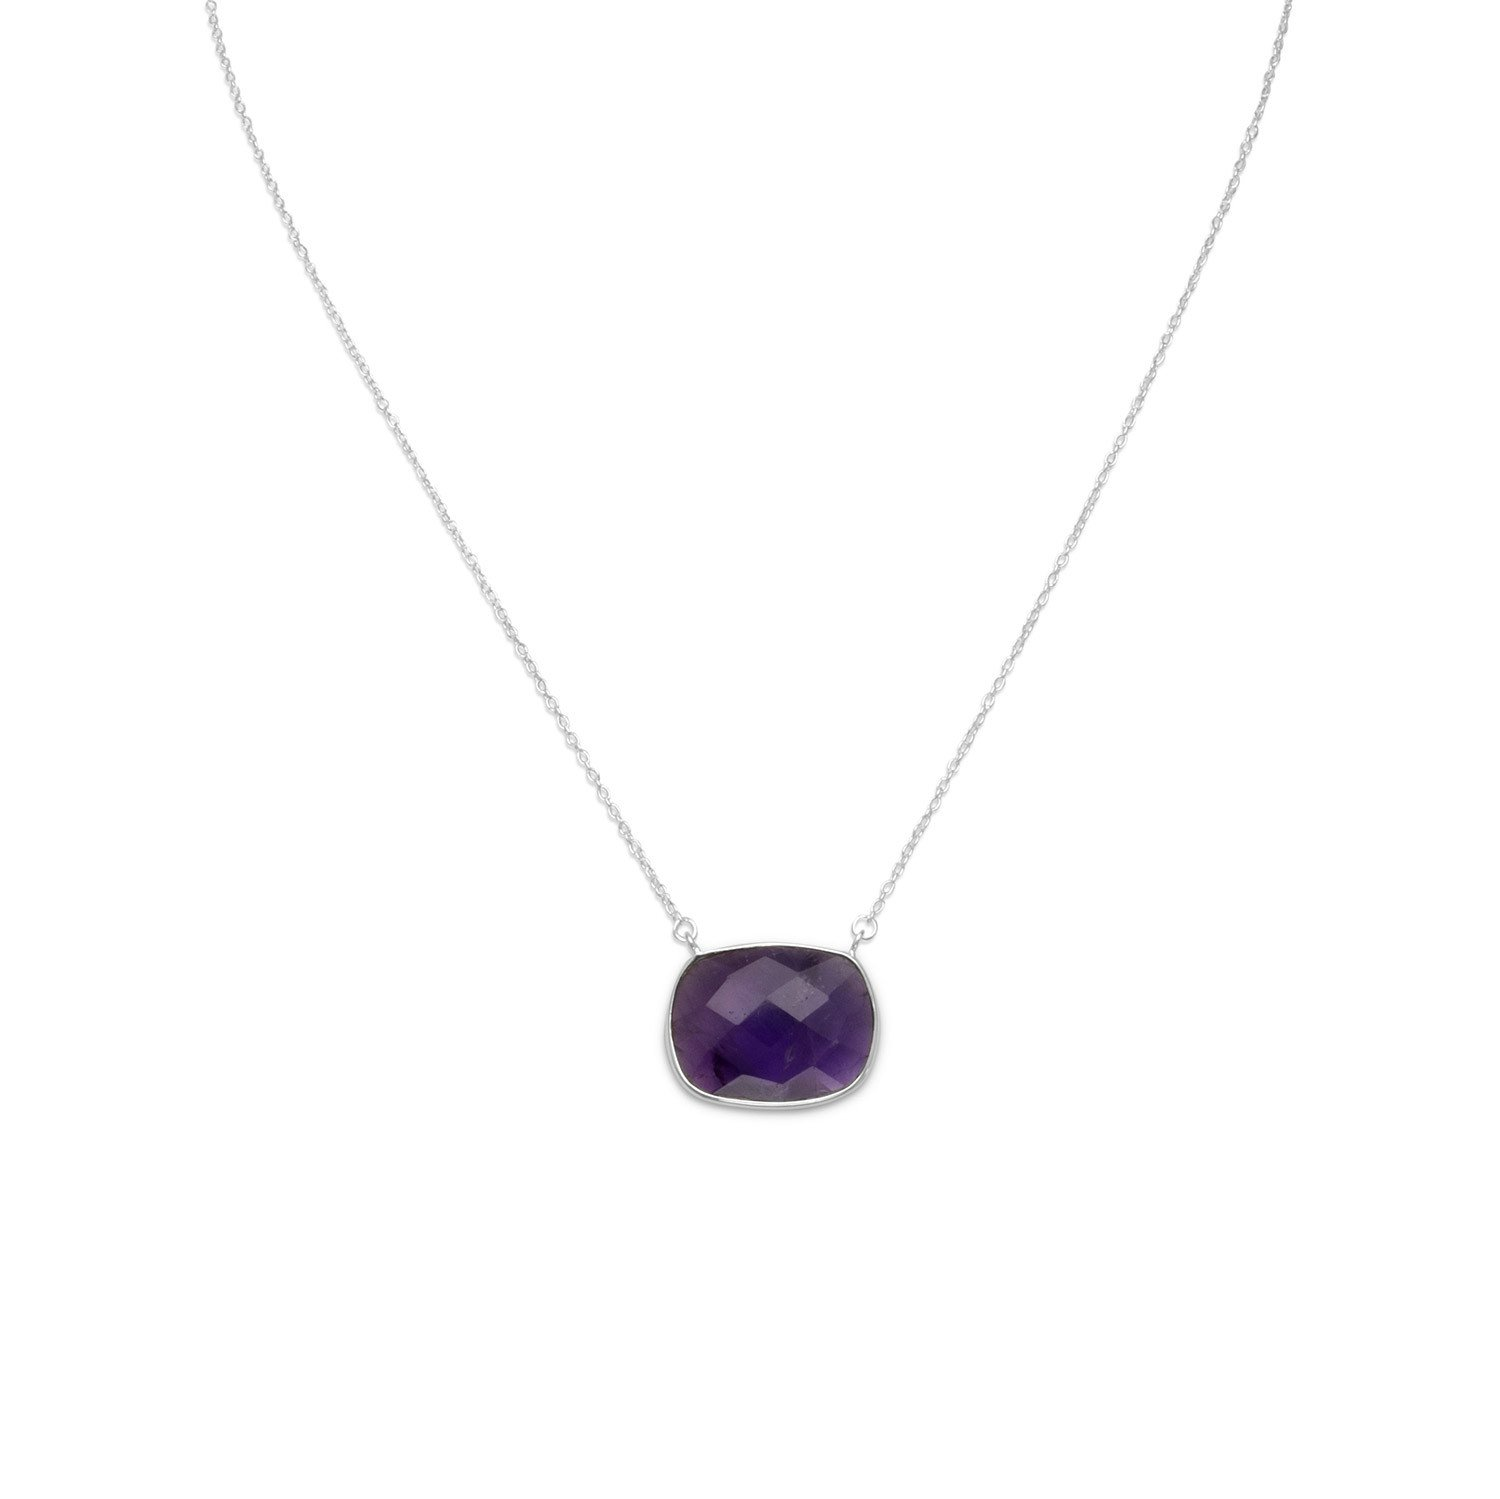 16″ + 2″ Faceted Oval Amethyst Necklace